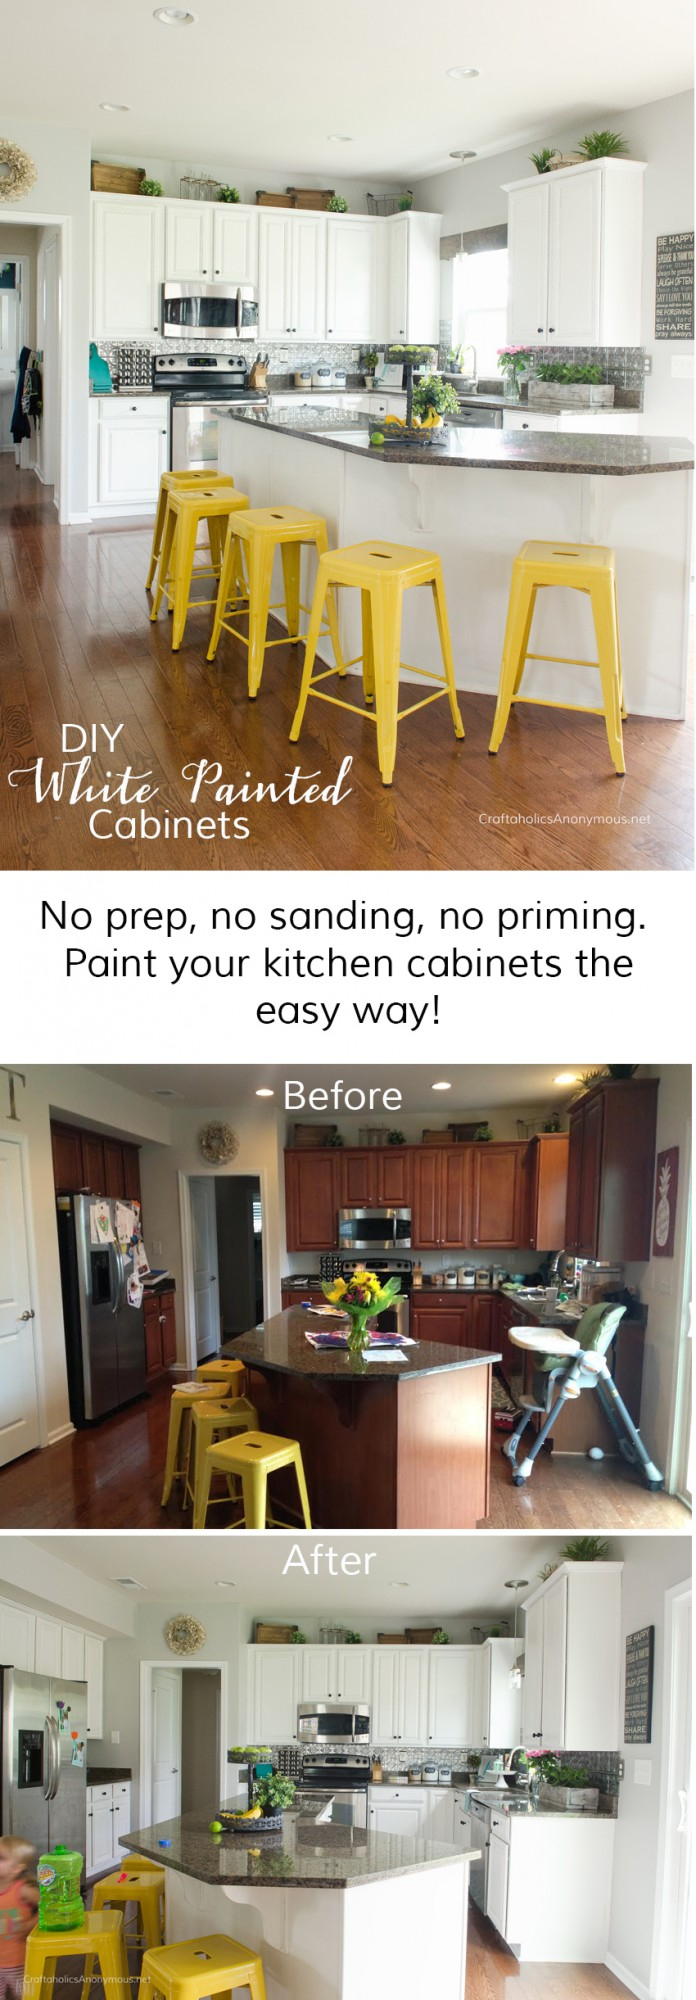 How to paint Kitchen Cabinets white with no prep using chalk paint powder.